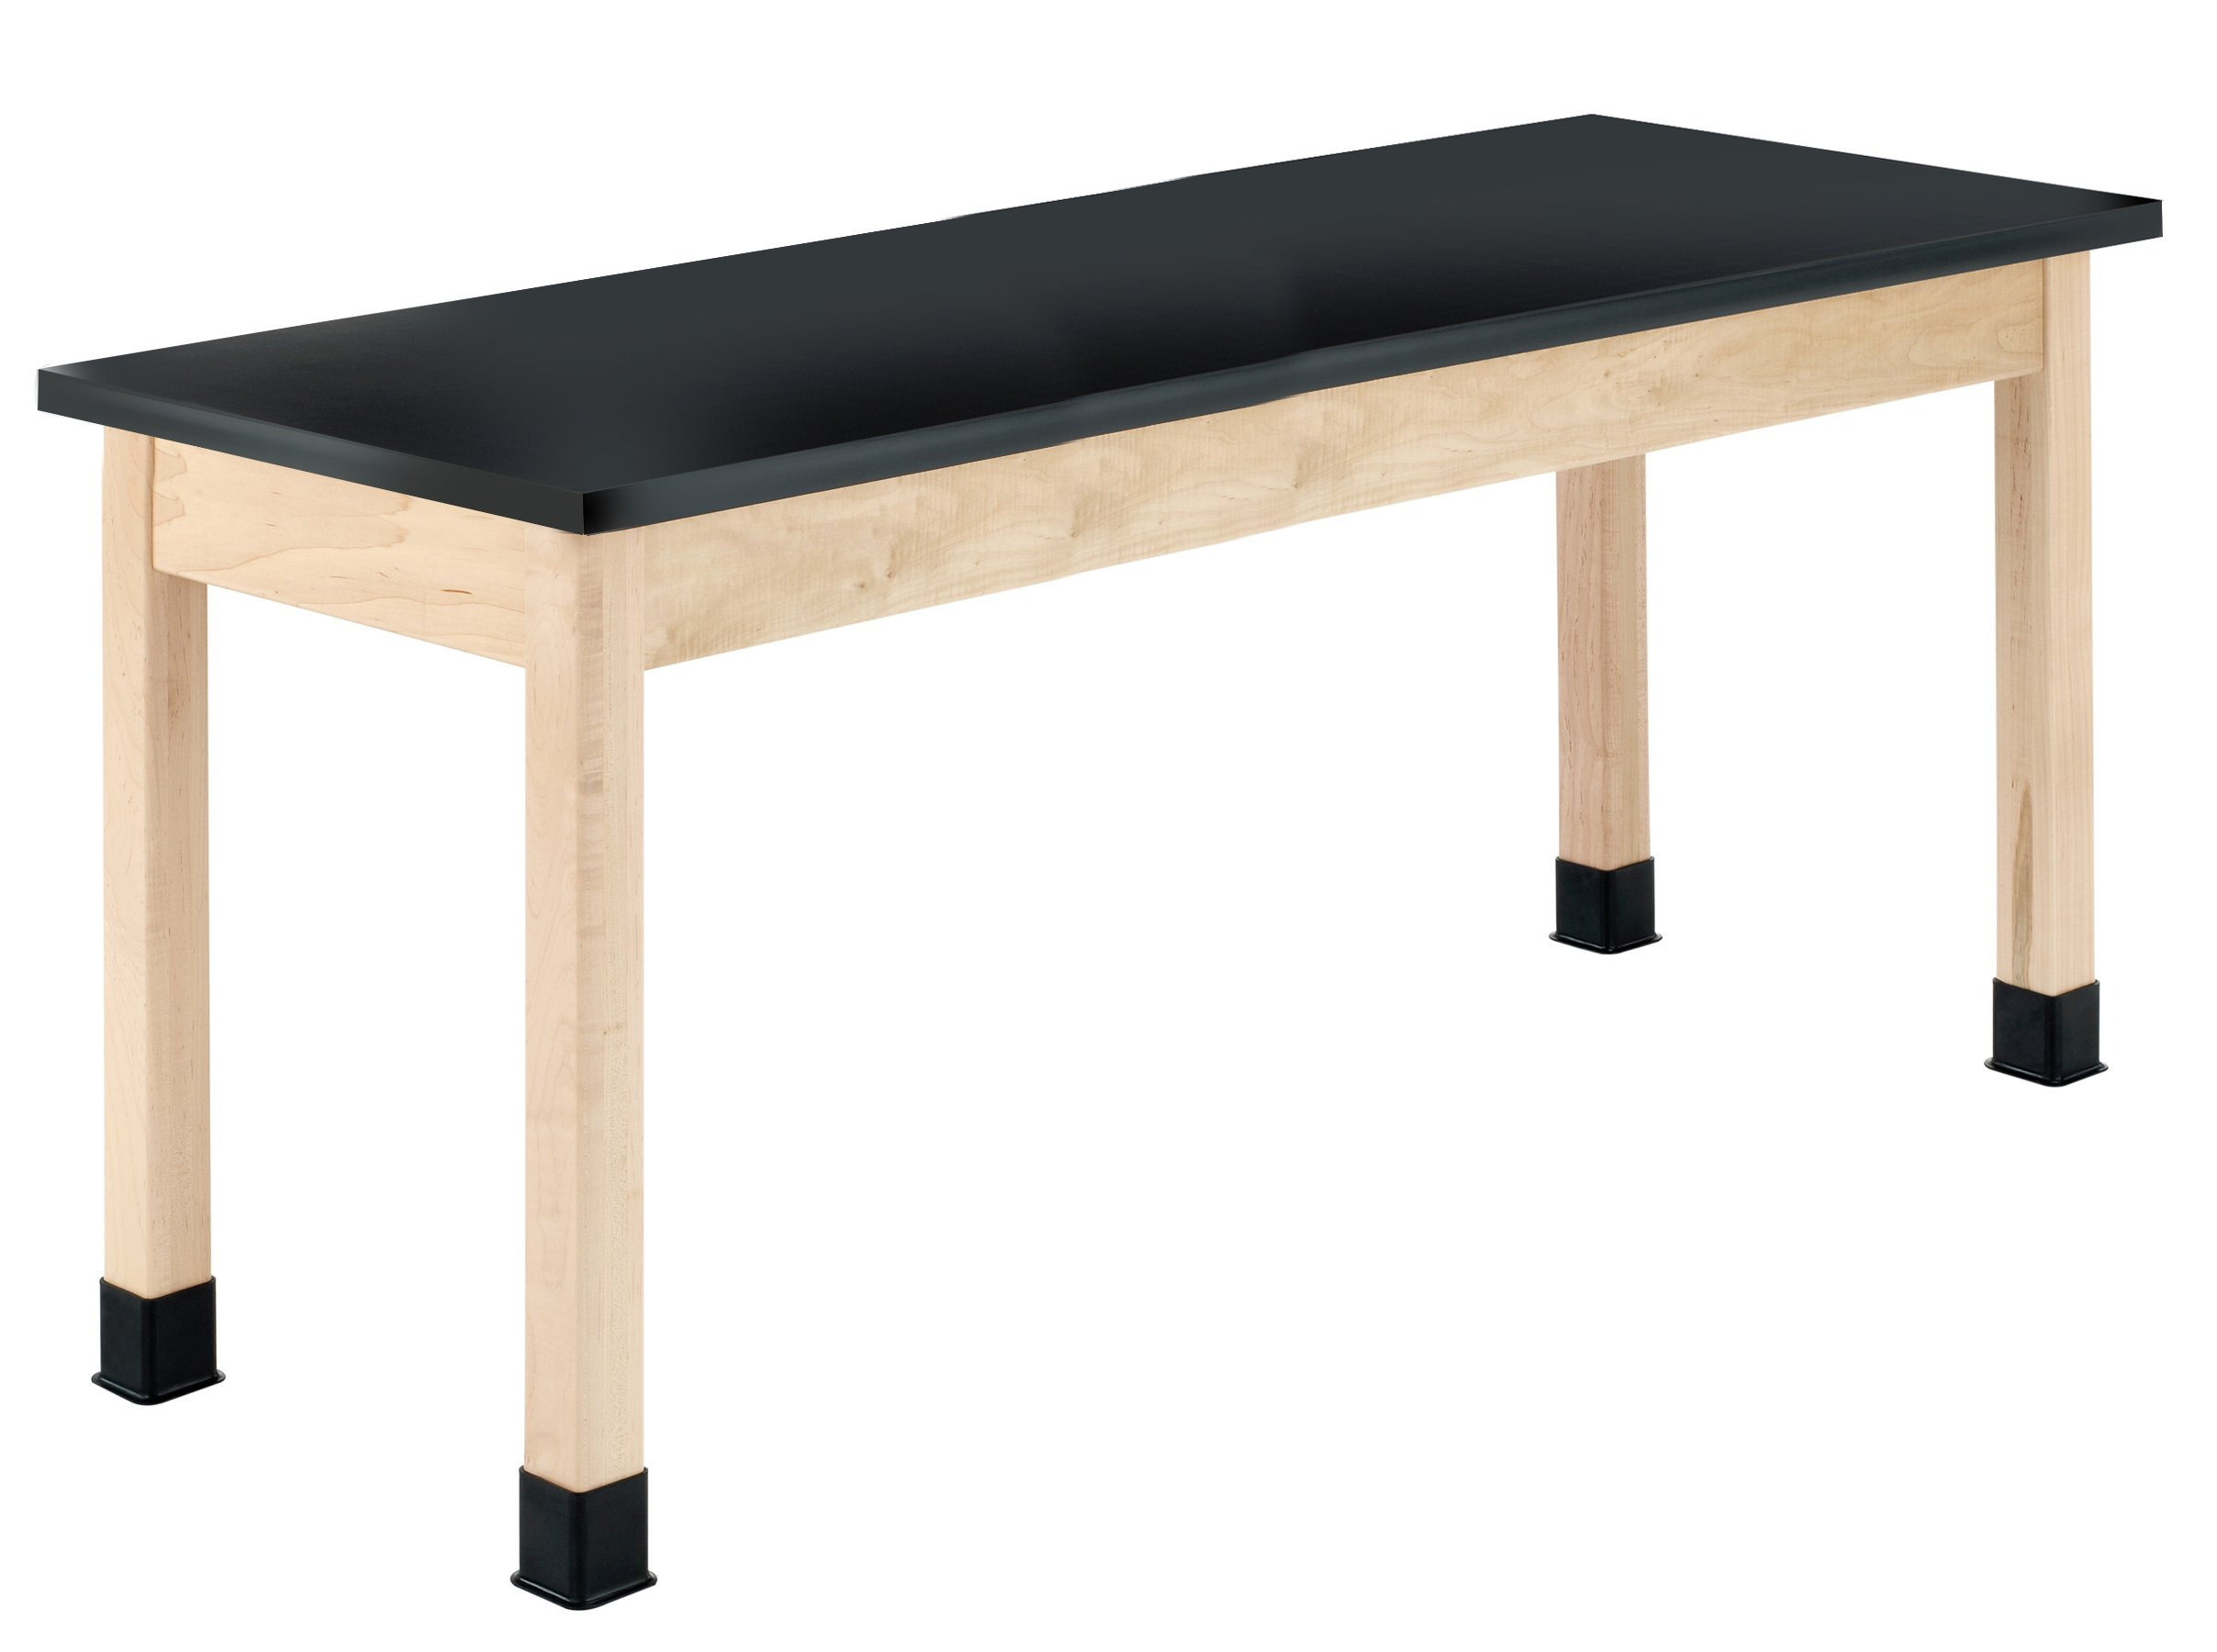 Diversified Woodcrafts P7602M30N - 24''x60'' - 30'' High, Plain Apron Laboratory Table, Maple Legs & Apron, ChemGuard Top, Made in USA by Diversified Woodcrafts